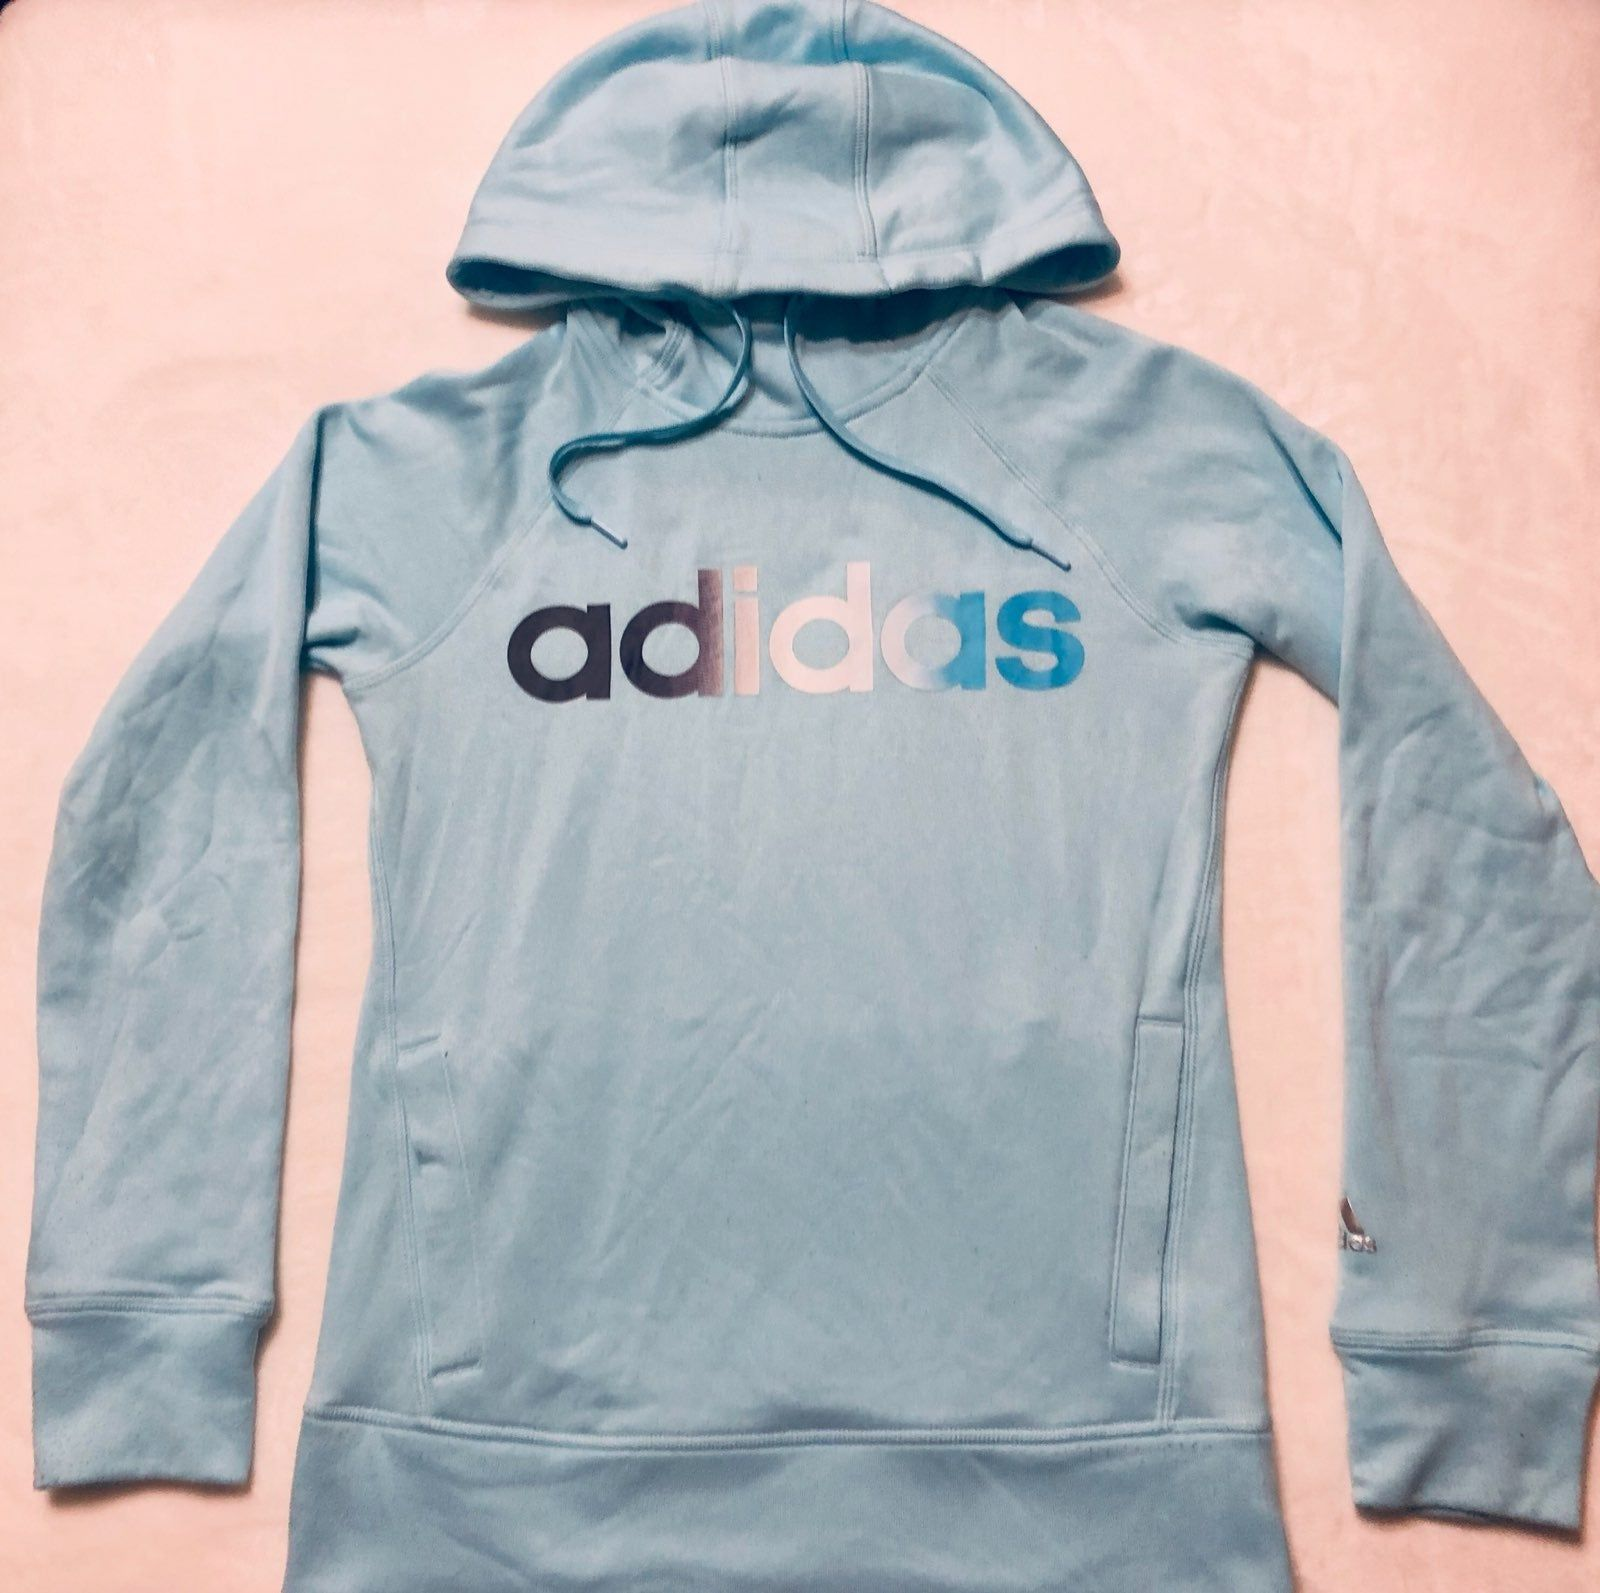 Super Cute Light Blue Adidas Hoodie This Is In Great Condition With No Major Signs Of Wear Hoodies Adidas Hoodie Blue Adidas [ 1593 x 1600 Pixel ]